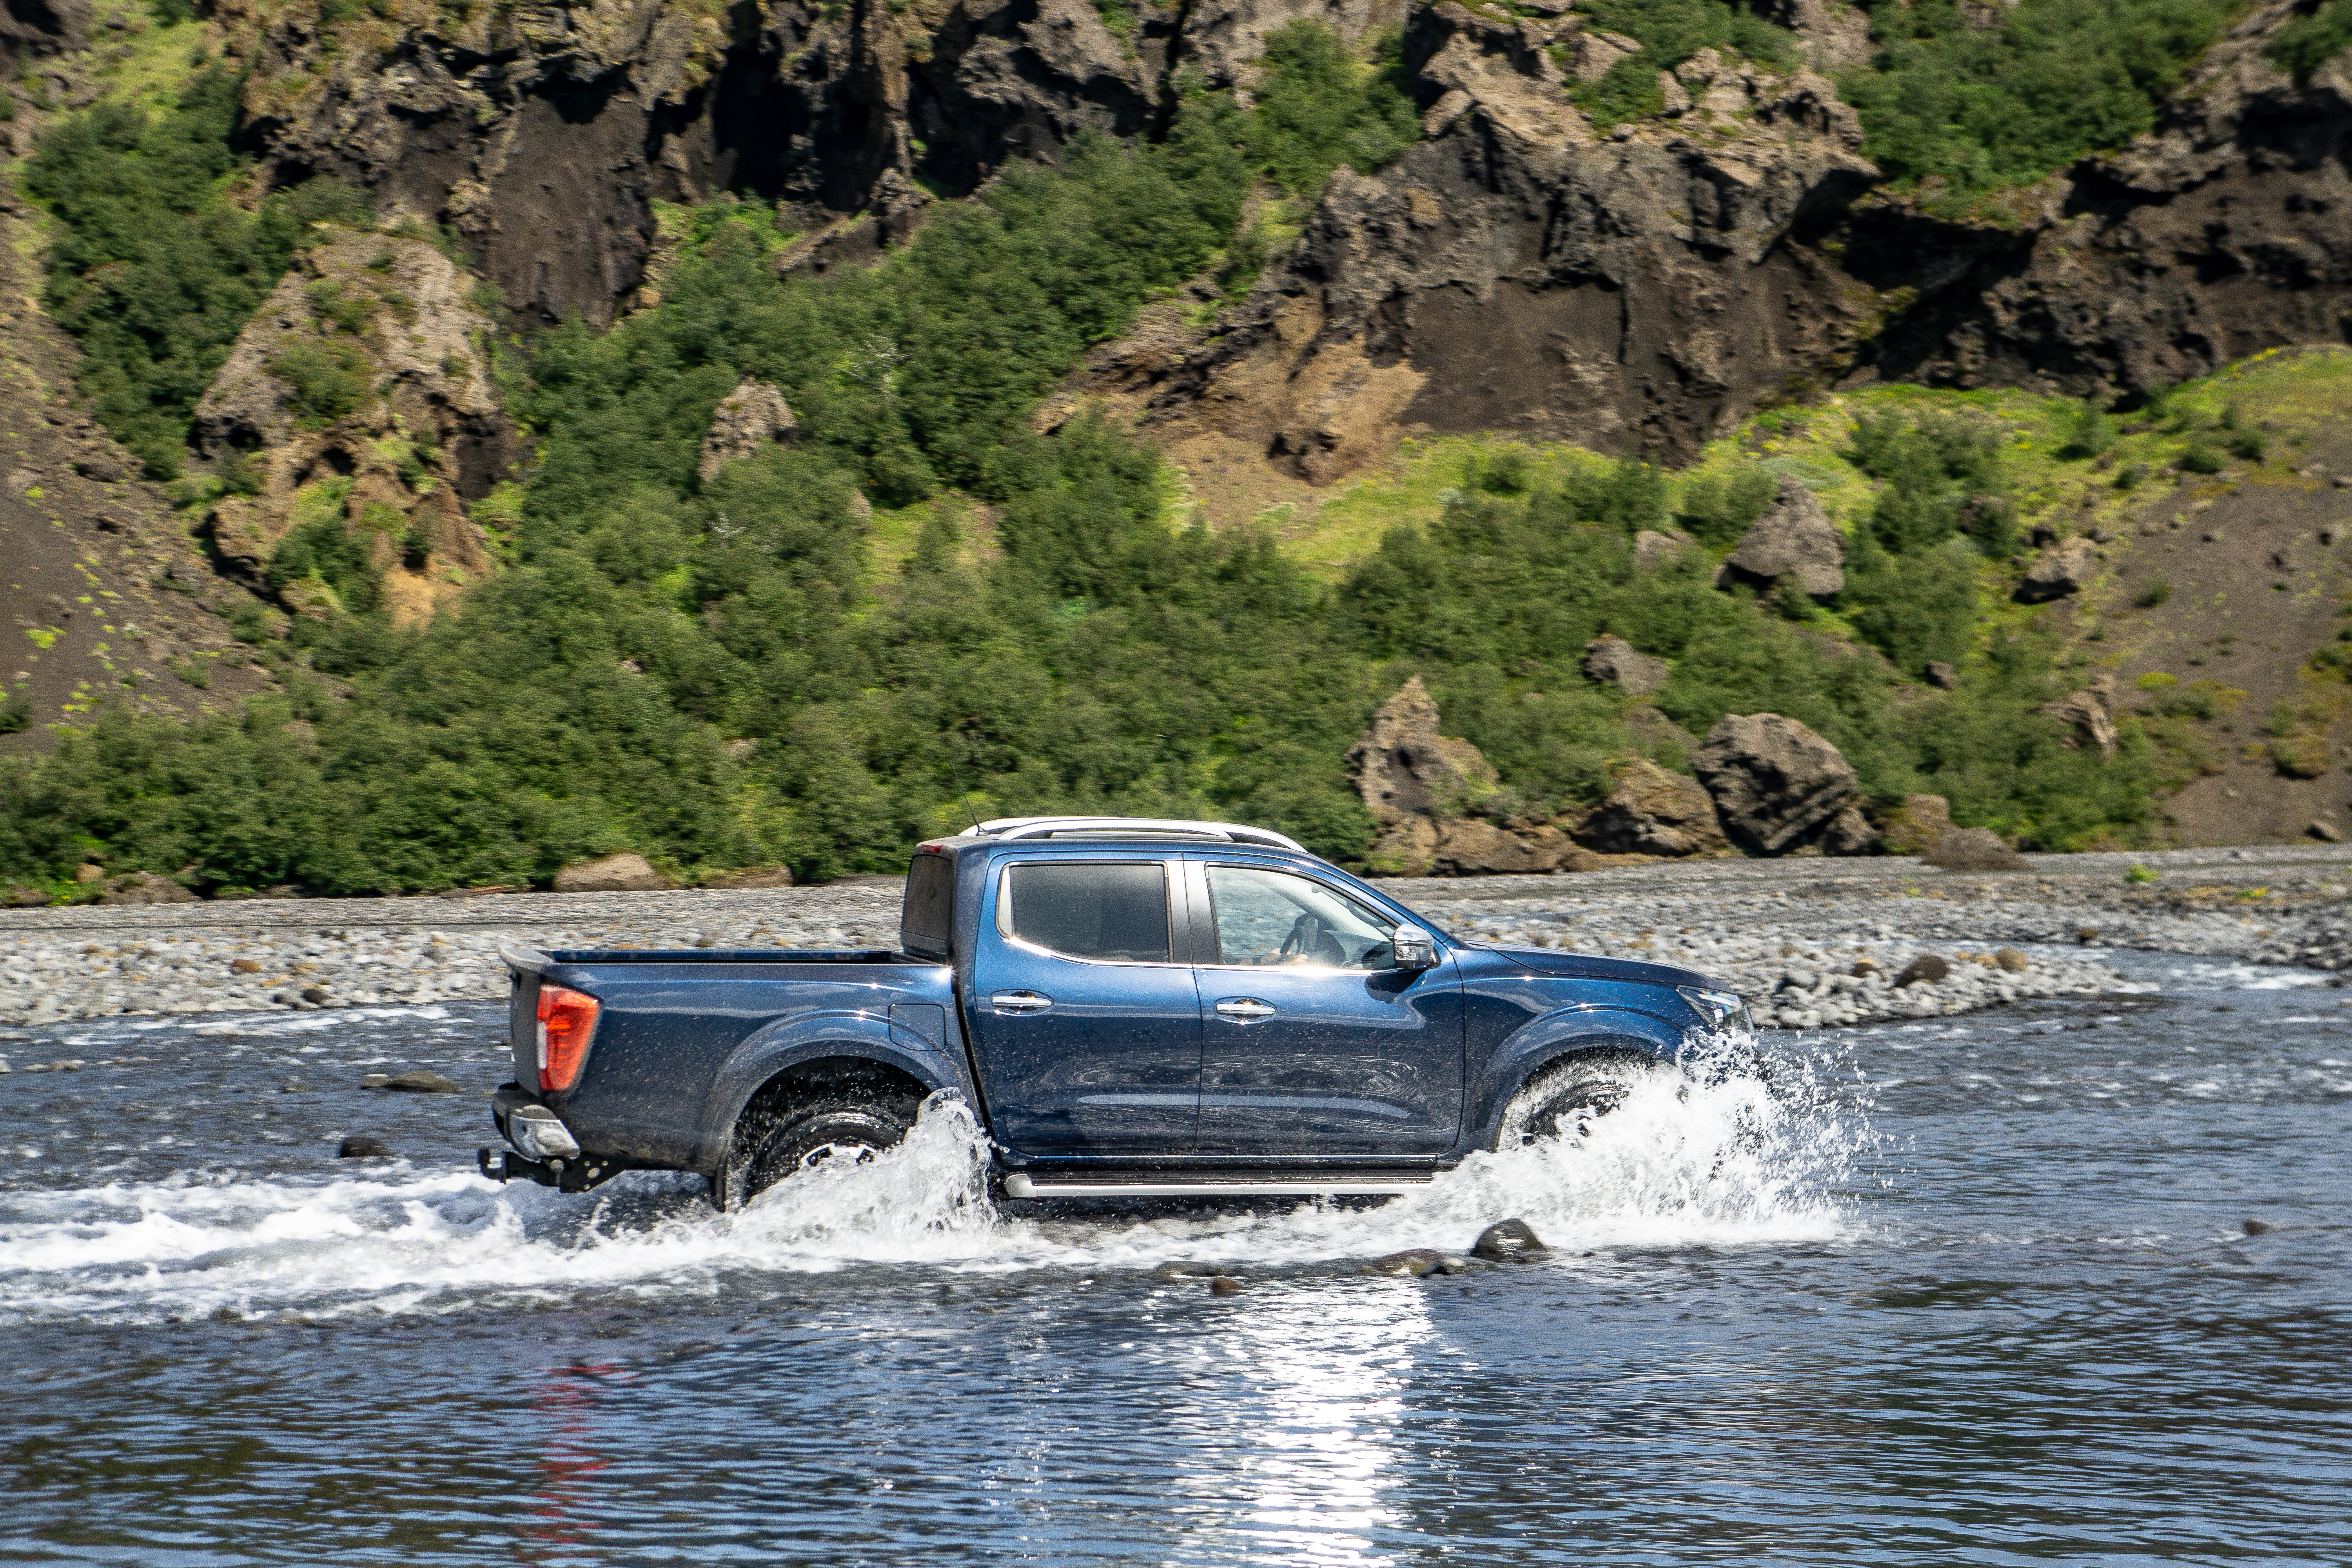 The Navara's wading ability is put to the test